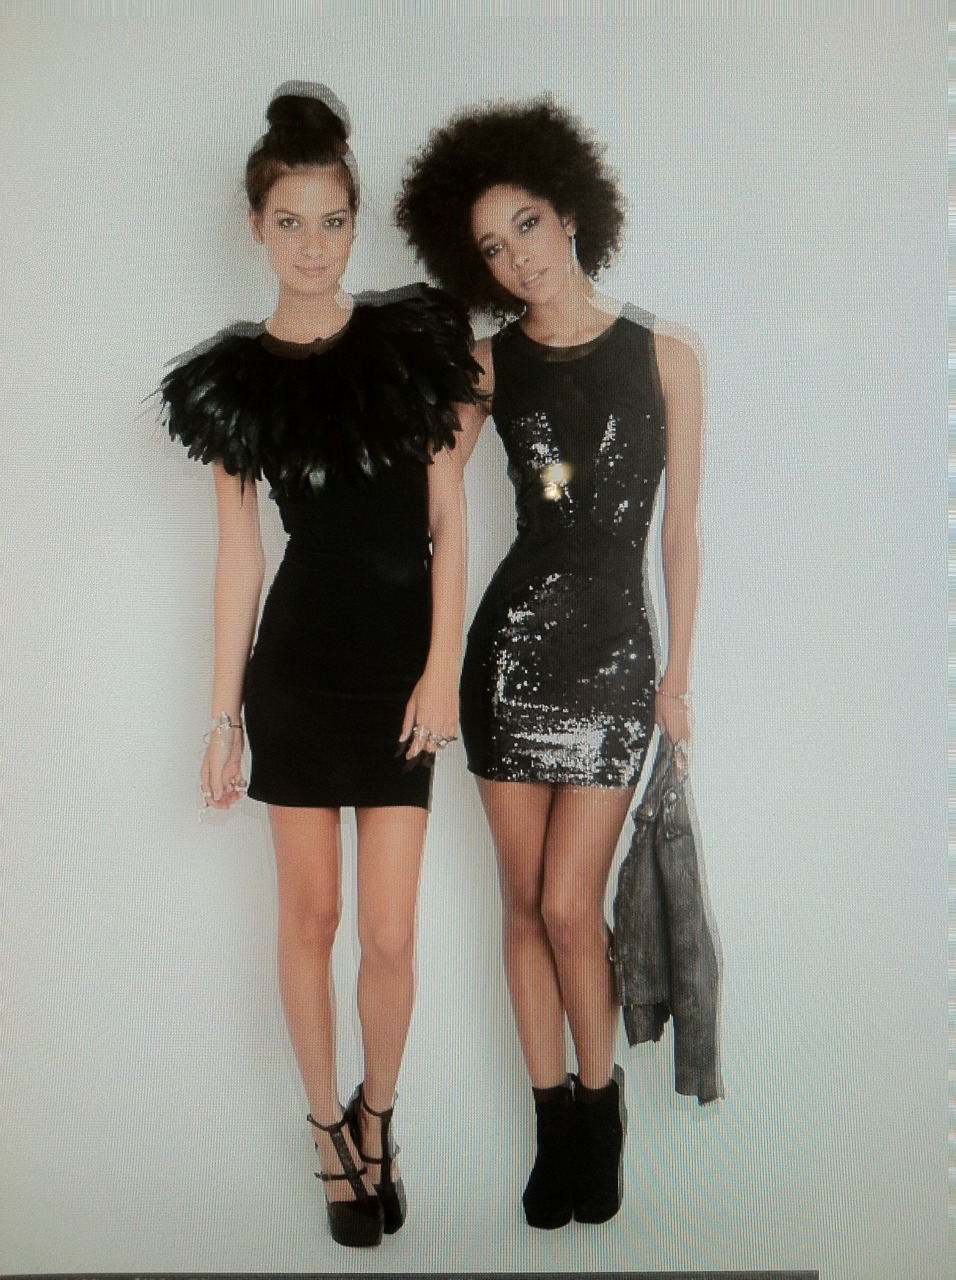 Sassy Style NYE Edition     via thenastygal :     double trouble.      Keep it sassy, join Sassy Nation     http://sassynation.tumblr.com     http://www.facebook.com/TheSassyNation     http://twitter.com/#!/SassyNation